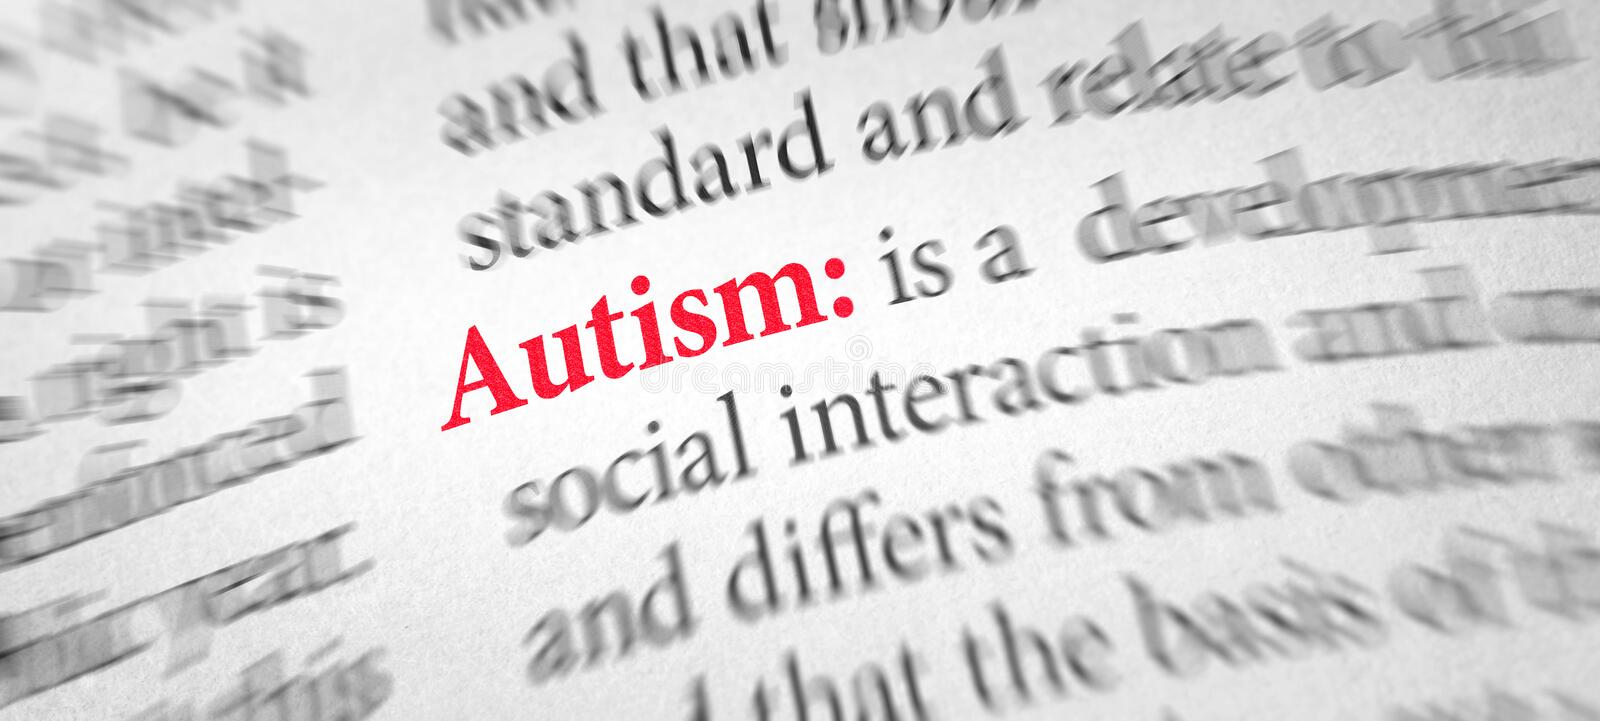 Definition of the word Autism in a dictionary royalty free stock photo